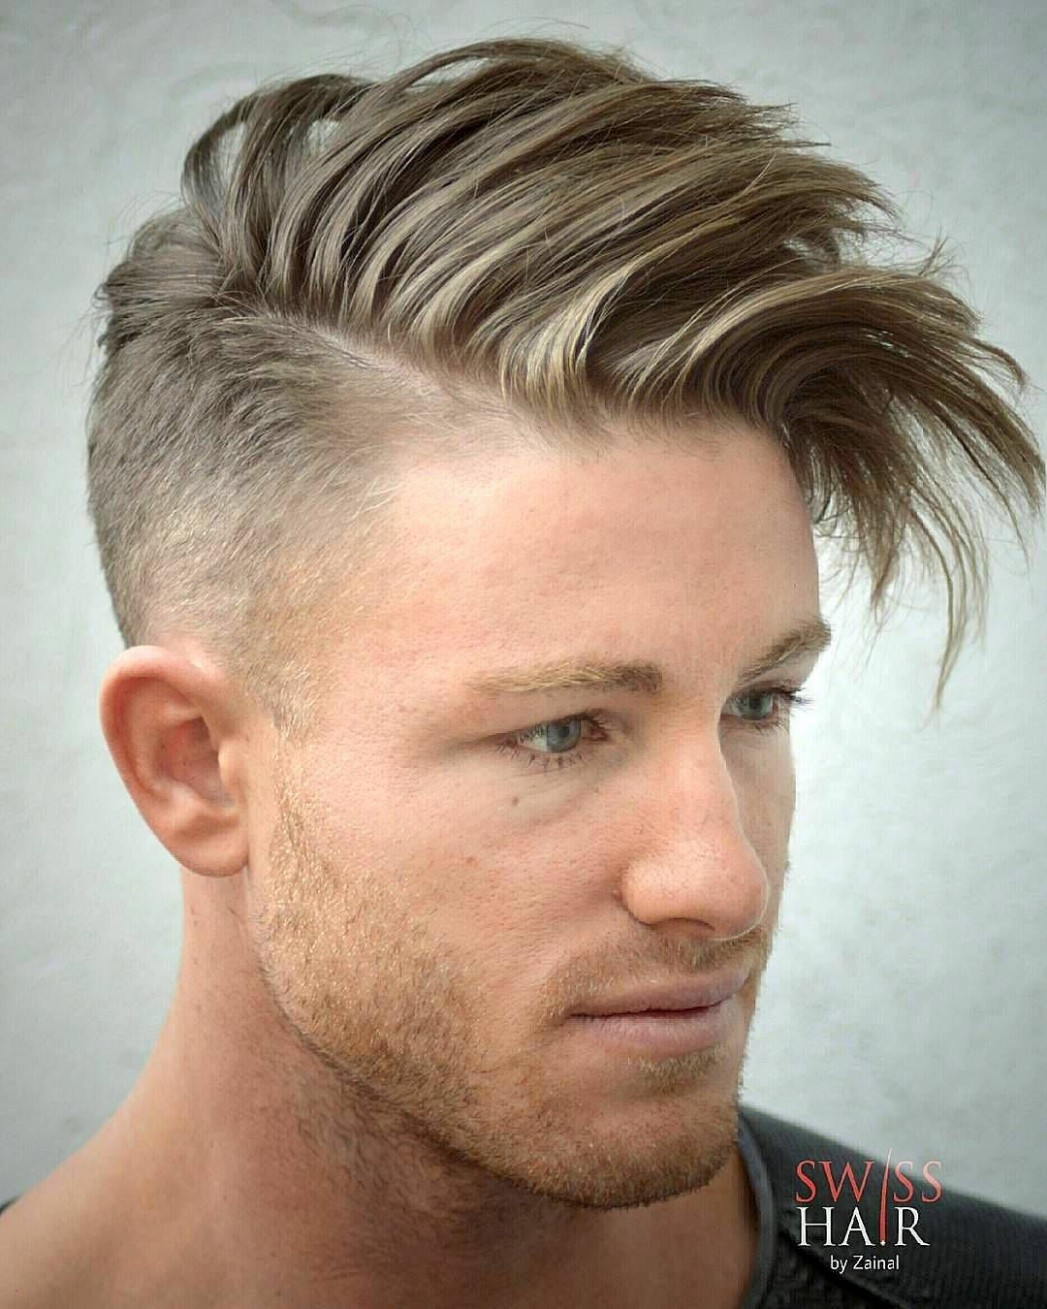 Boy Haircut Shaved Sides Long Top Elegant 10 Men S Hairstyles To Mens Haircuts Long On Top Shaved Sides